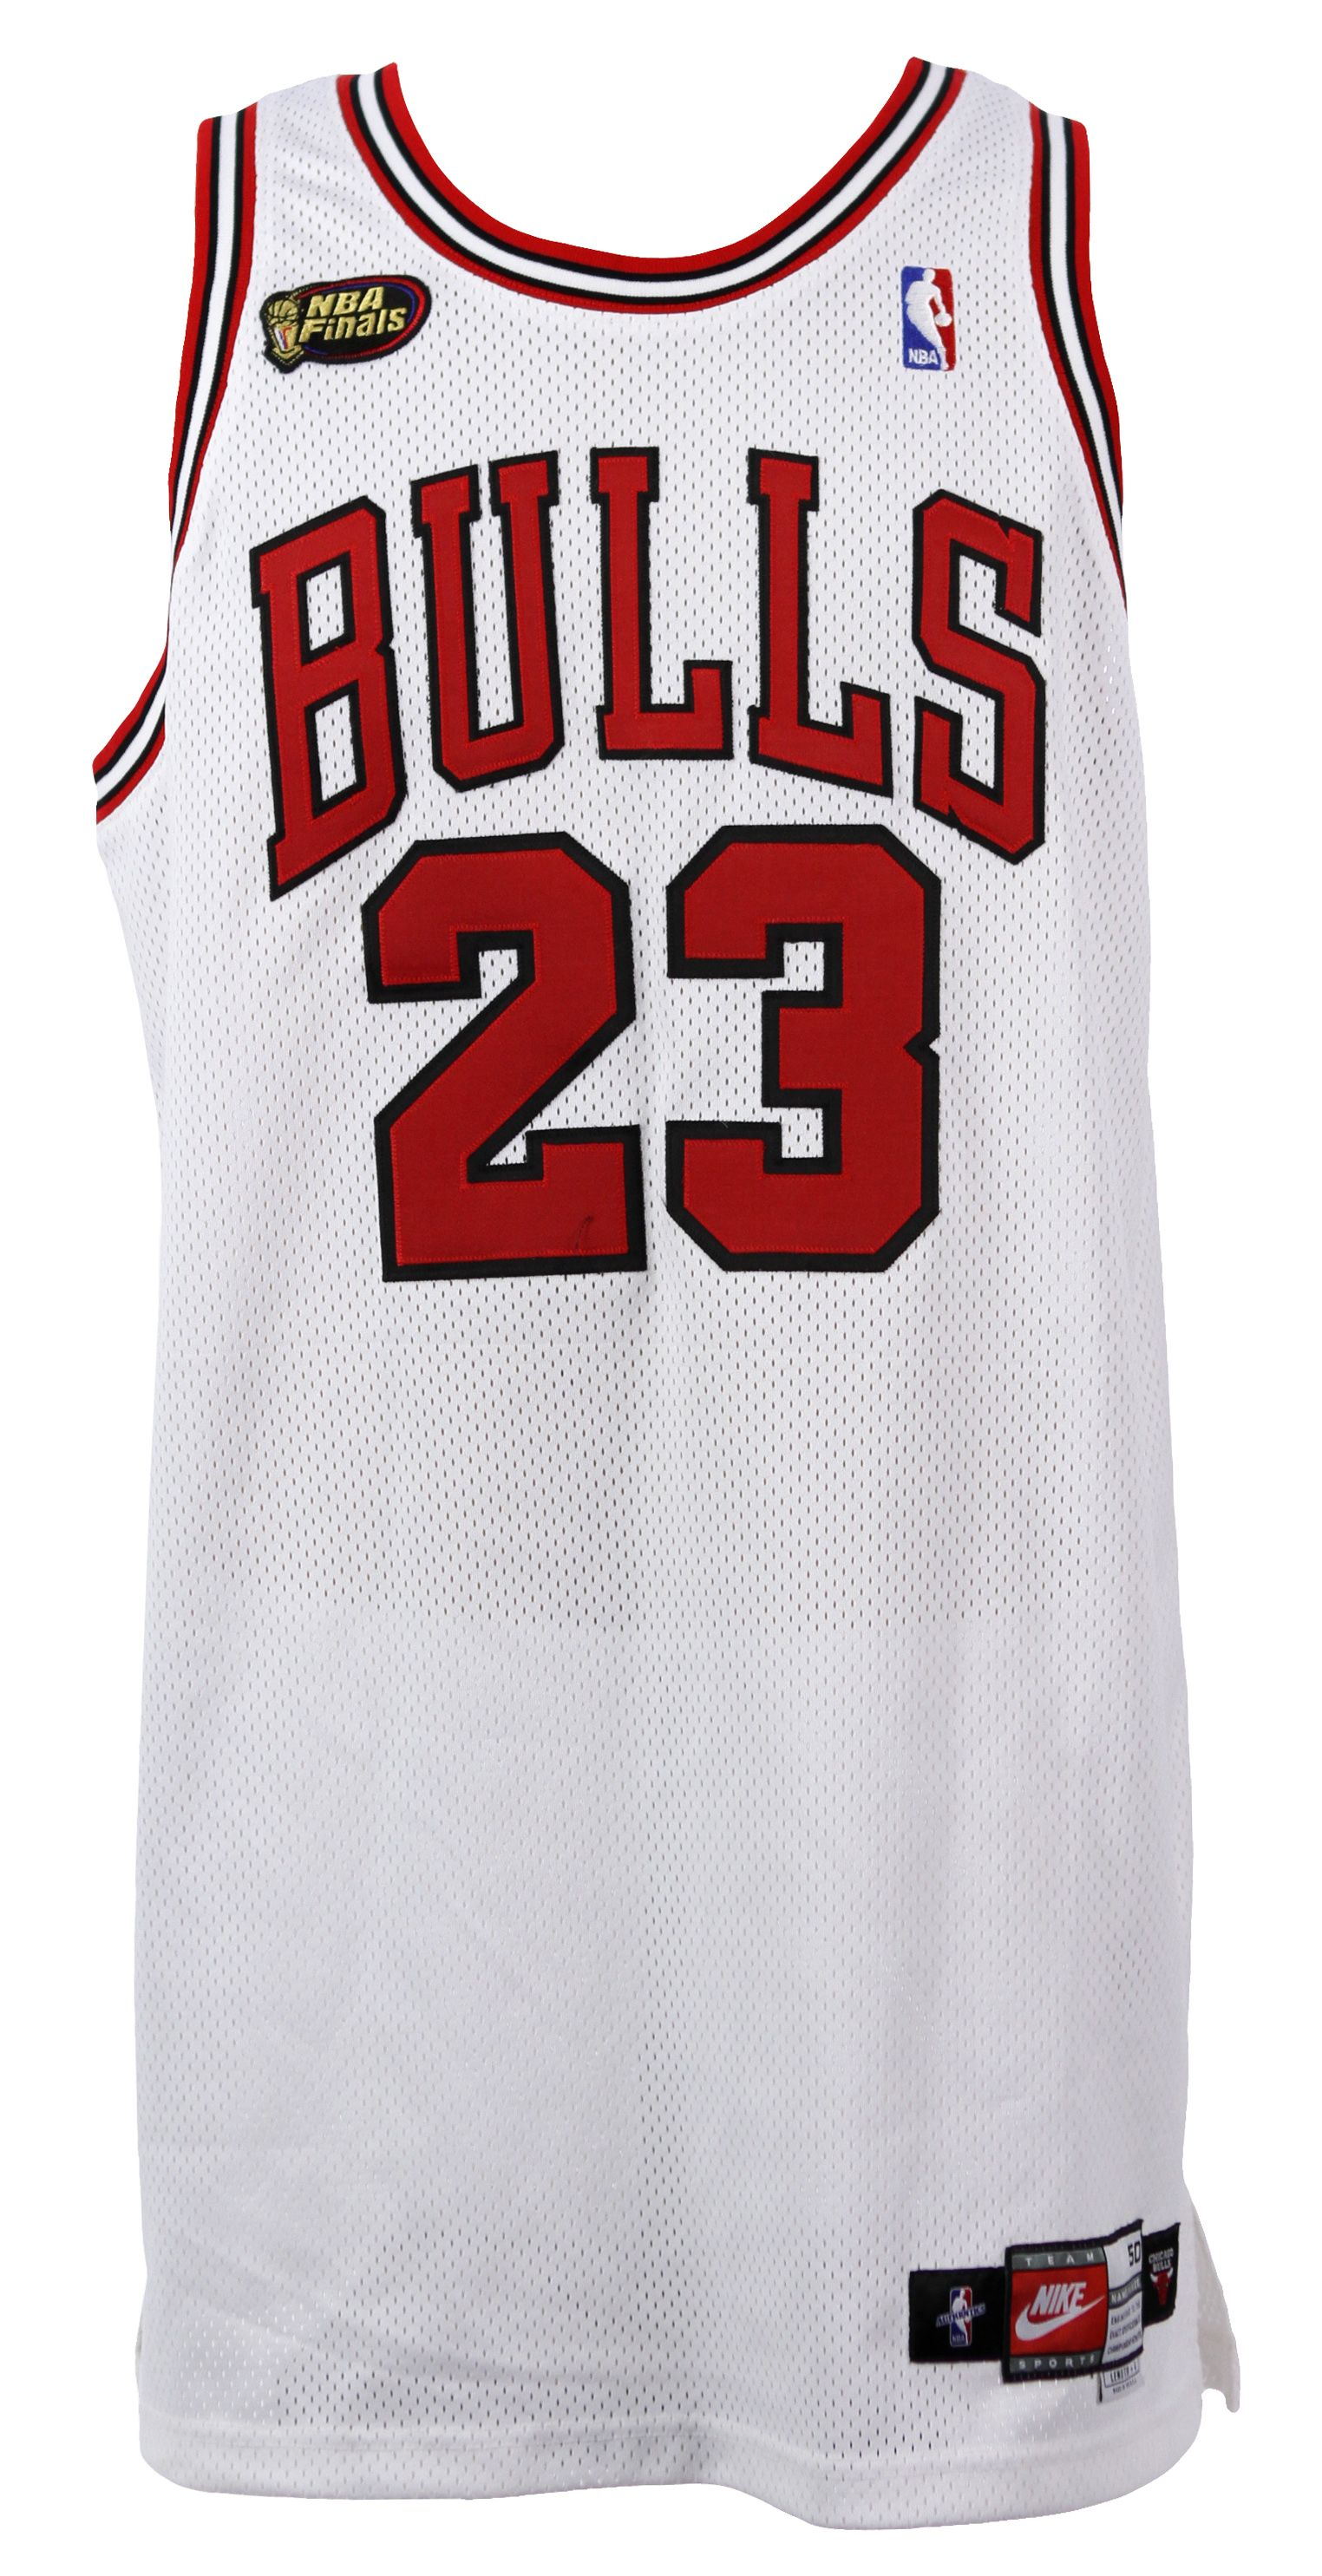 info for 0cee0 05d79 Most Valuable Michael Jordan Game Worn Jersey Uncovered - PR.com